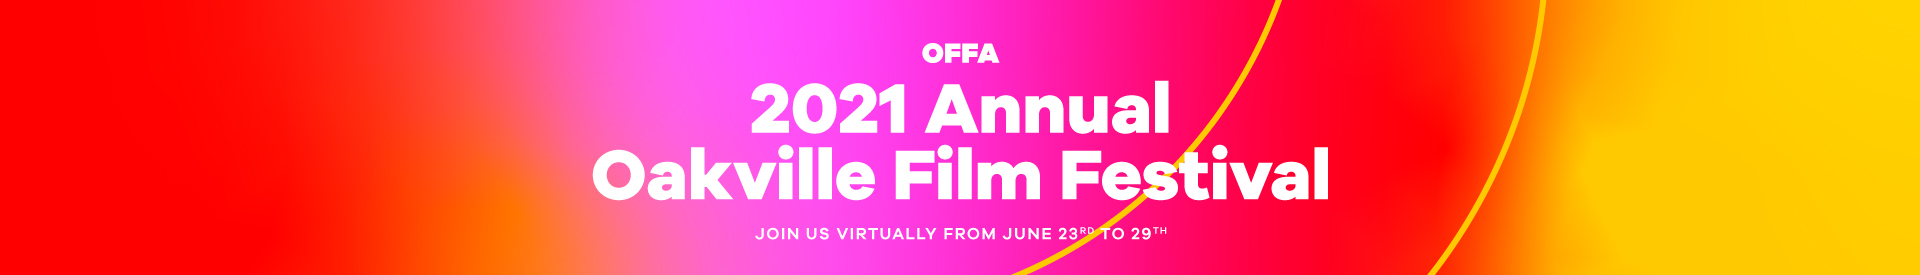 2021 Annual Oakville Film Festival Banner Pink and Yellow